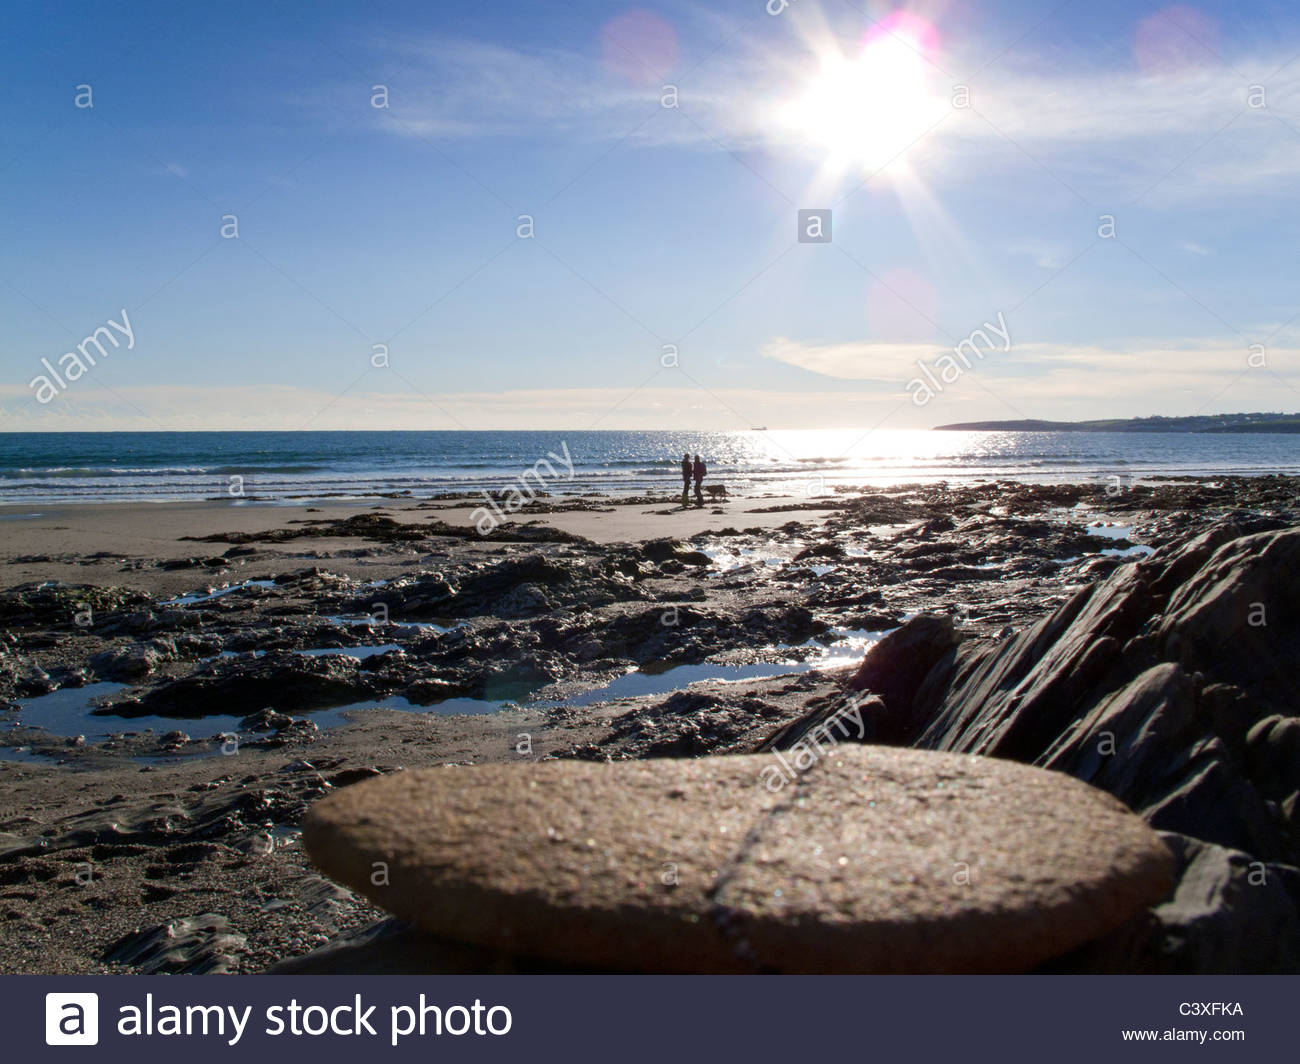 People enjoying rocky beach, Cornwall, United Kingdom - Stock Image